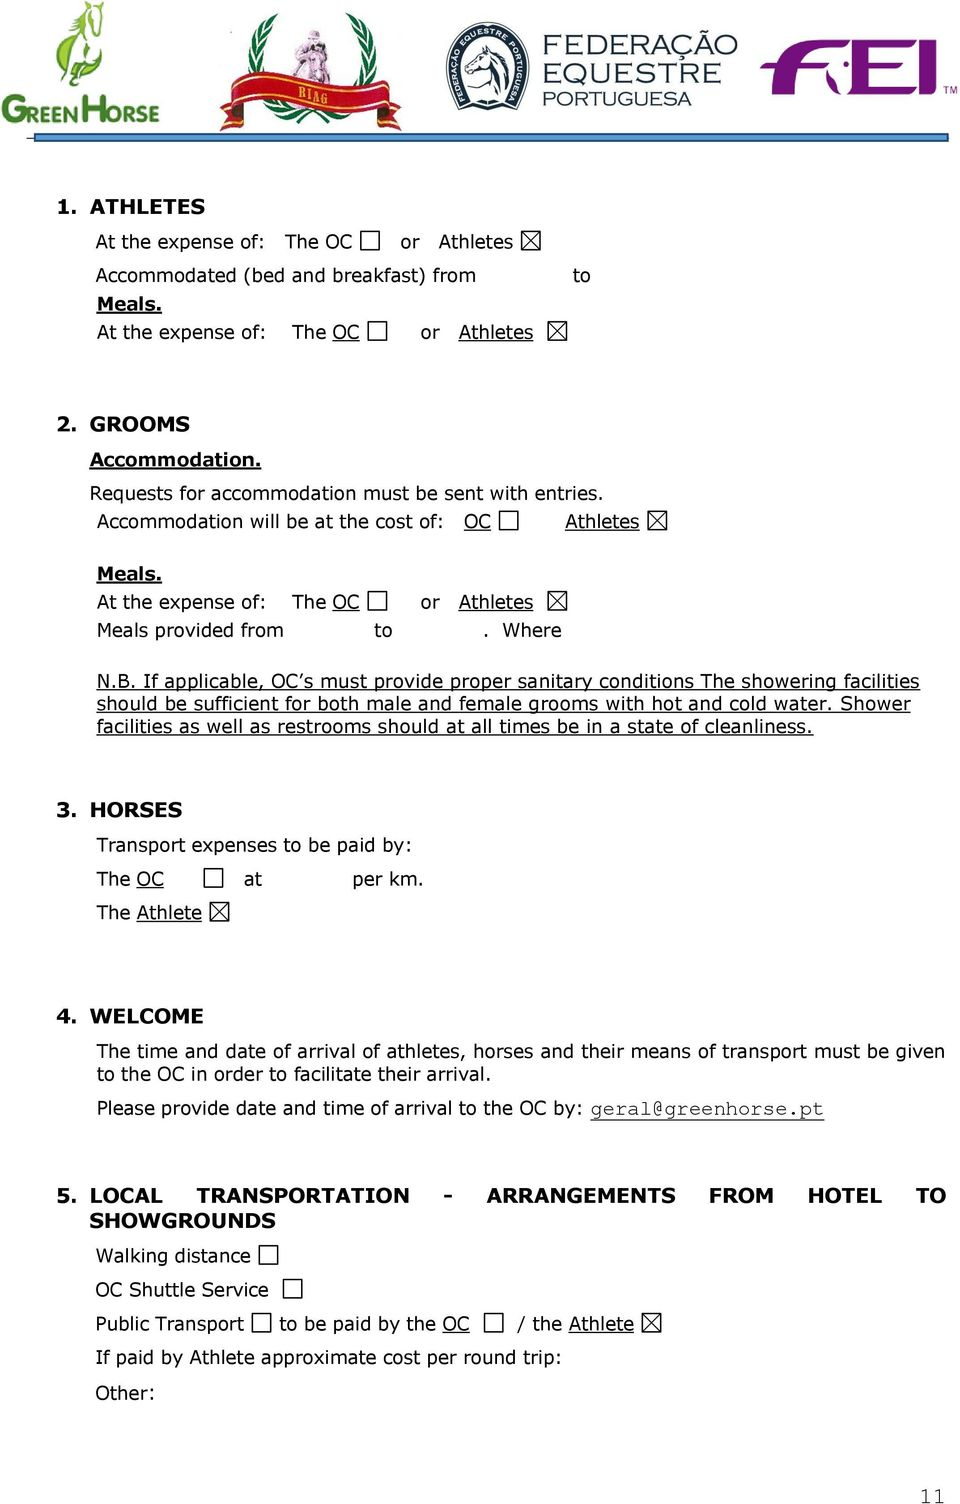 If applicable, OC s must provide proper sanitary conditions The showering facilities should be sufficient for both male and female grooms with hot and cold water.